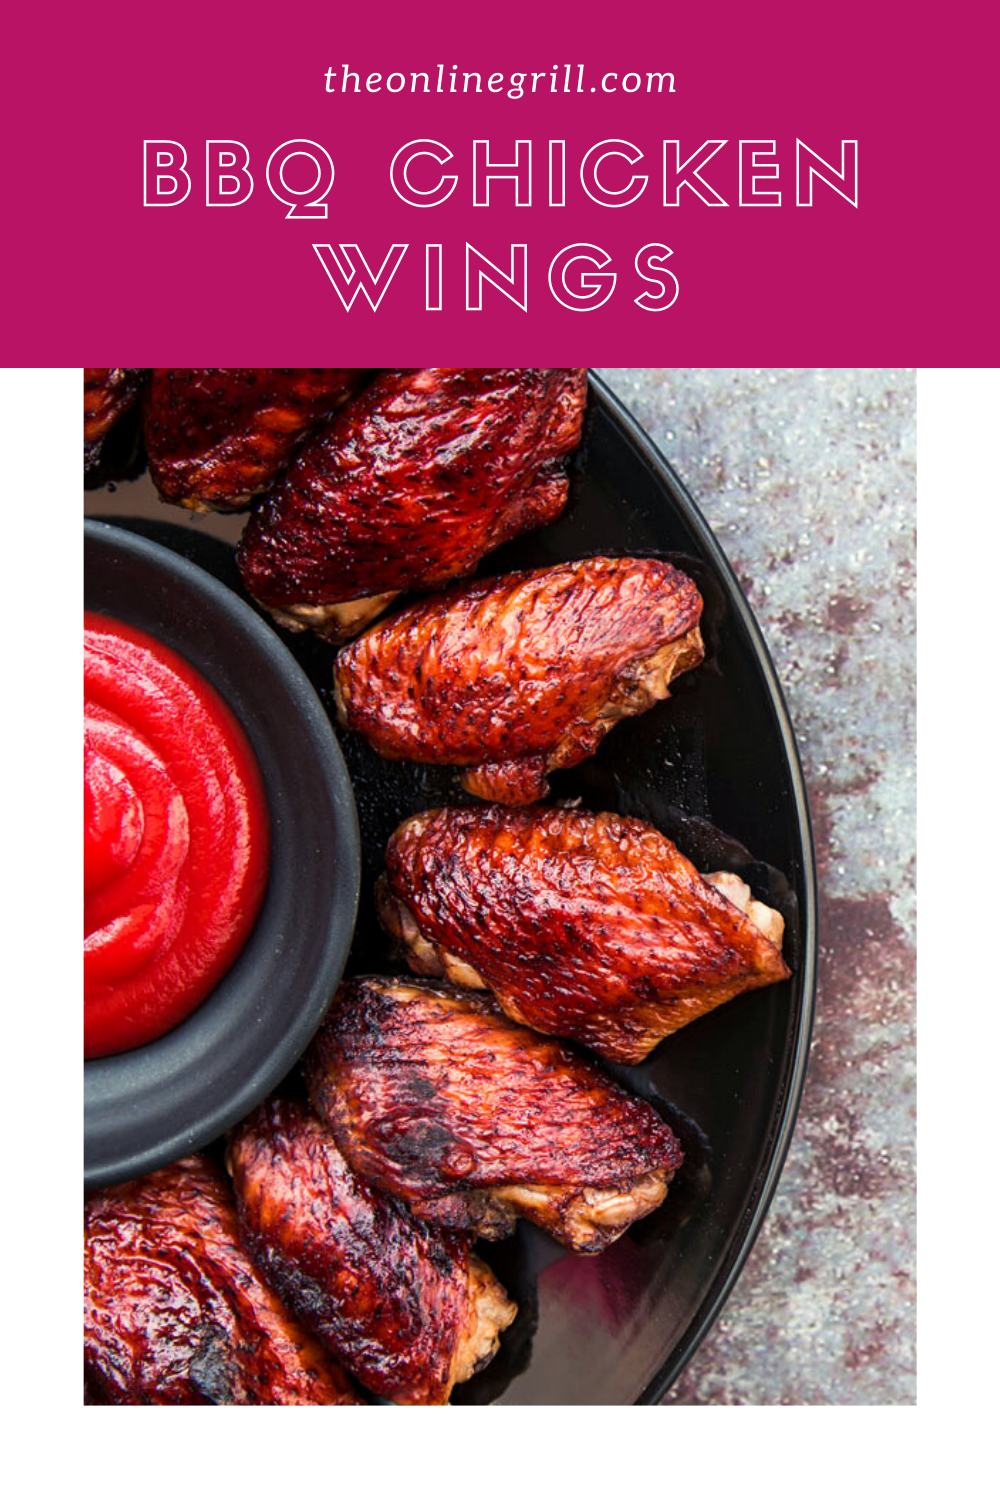 Easy Bbq Chicken Wings Recipe Theonlinegrill Com Recipe Bbq Chicken Wings Recipe Bbq Chicken Wings Wing Recipes